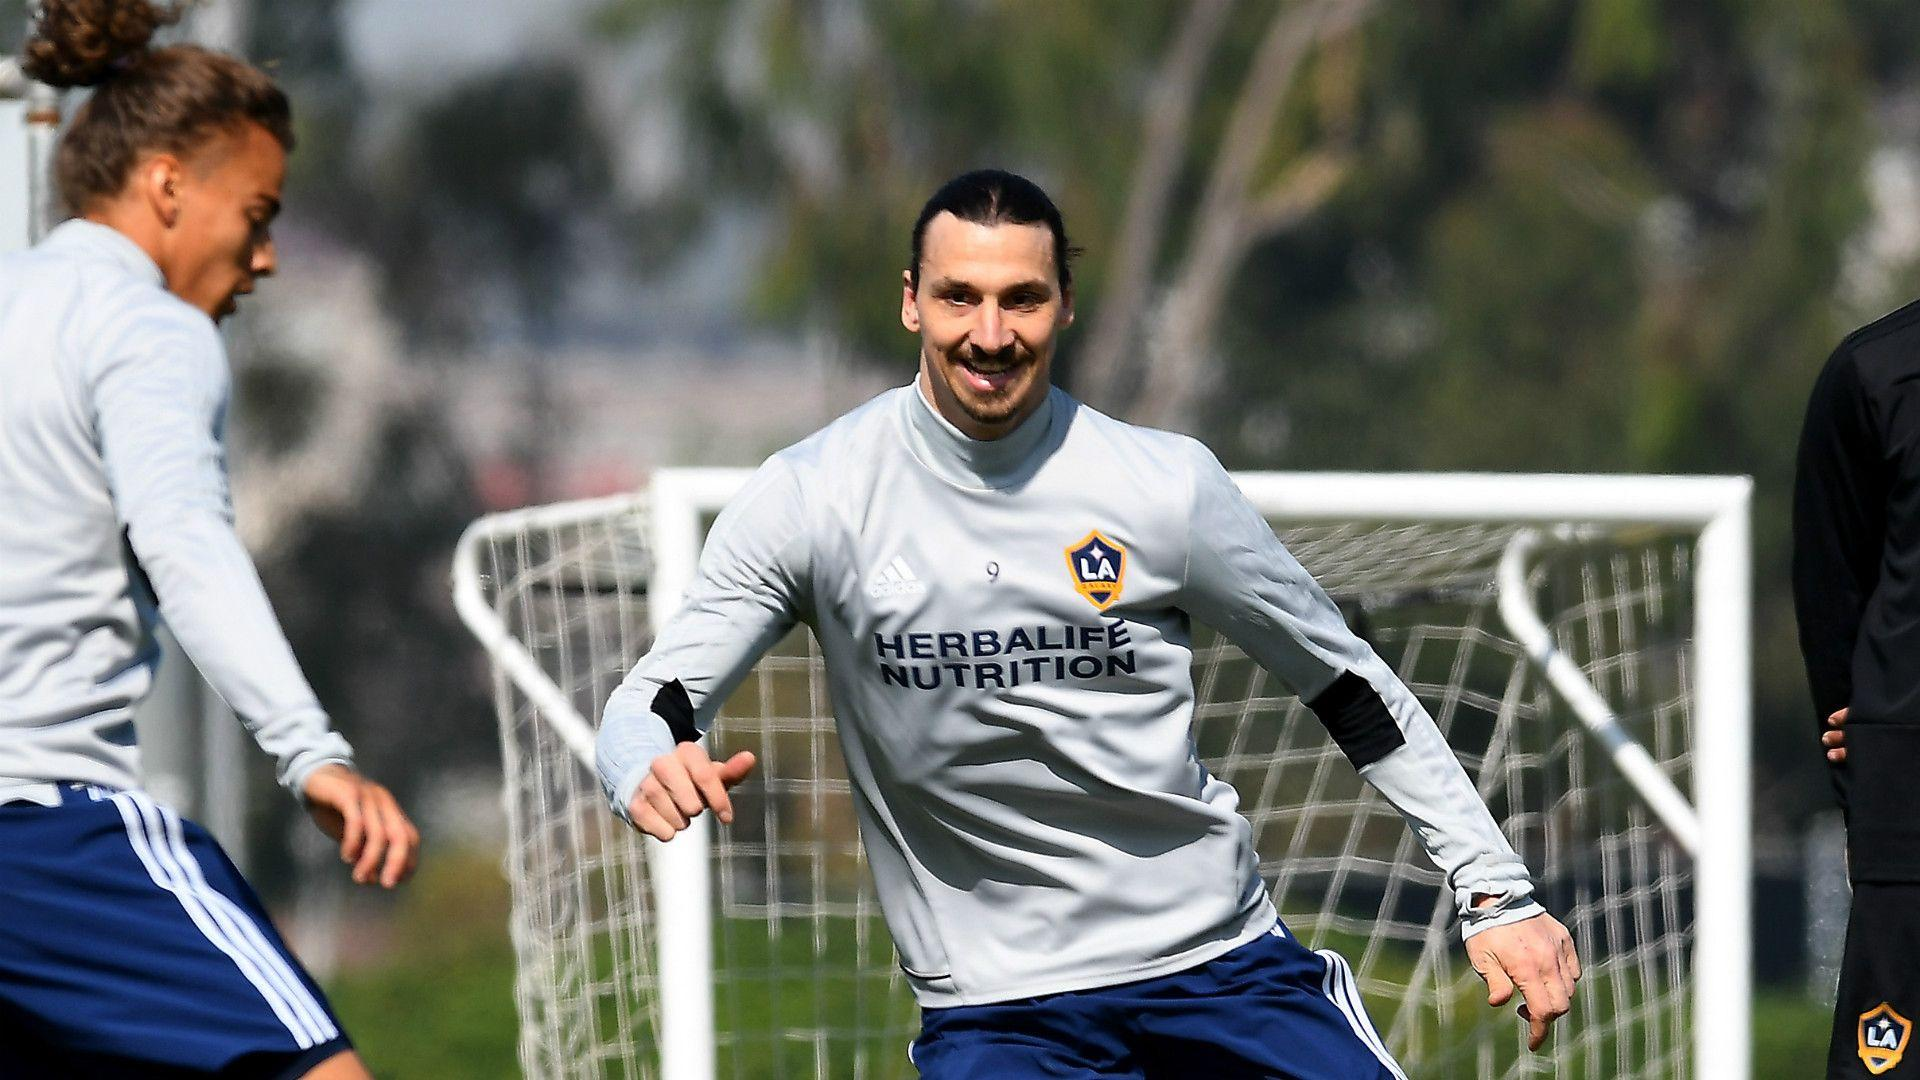 fde3ea97107 Knee injury showed Zlatan isn't invincible, but also made him .